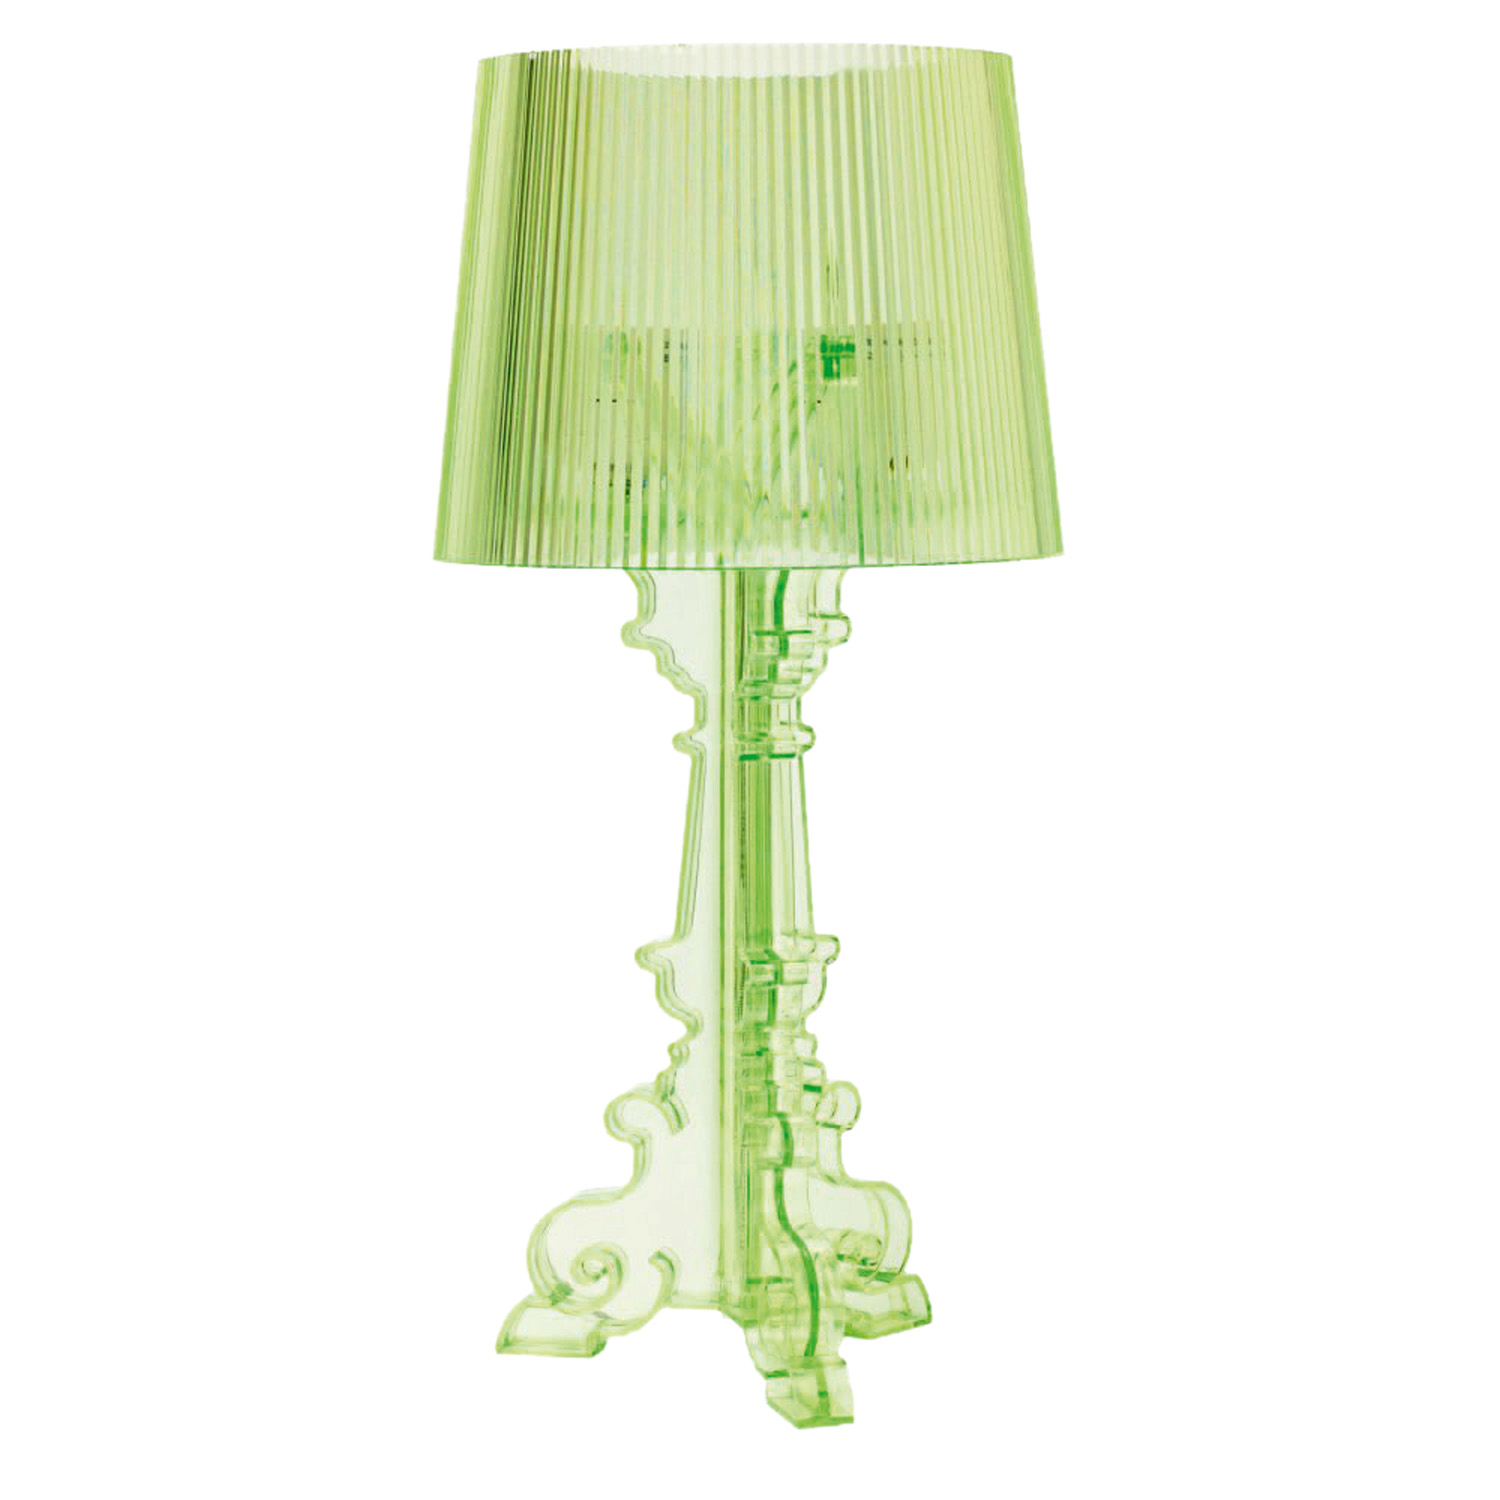 Trend alert killer colour completehome for Ferruccio laviani bourgie lamp